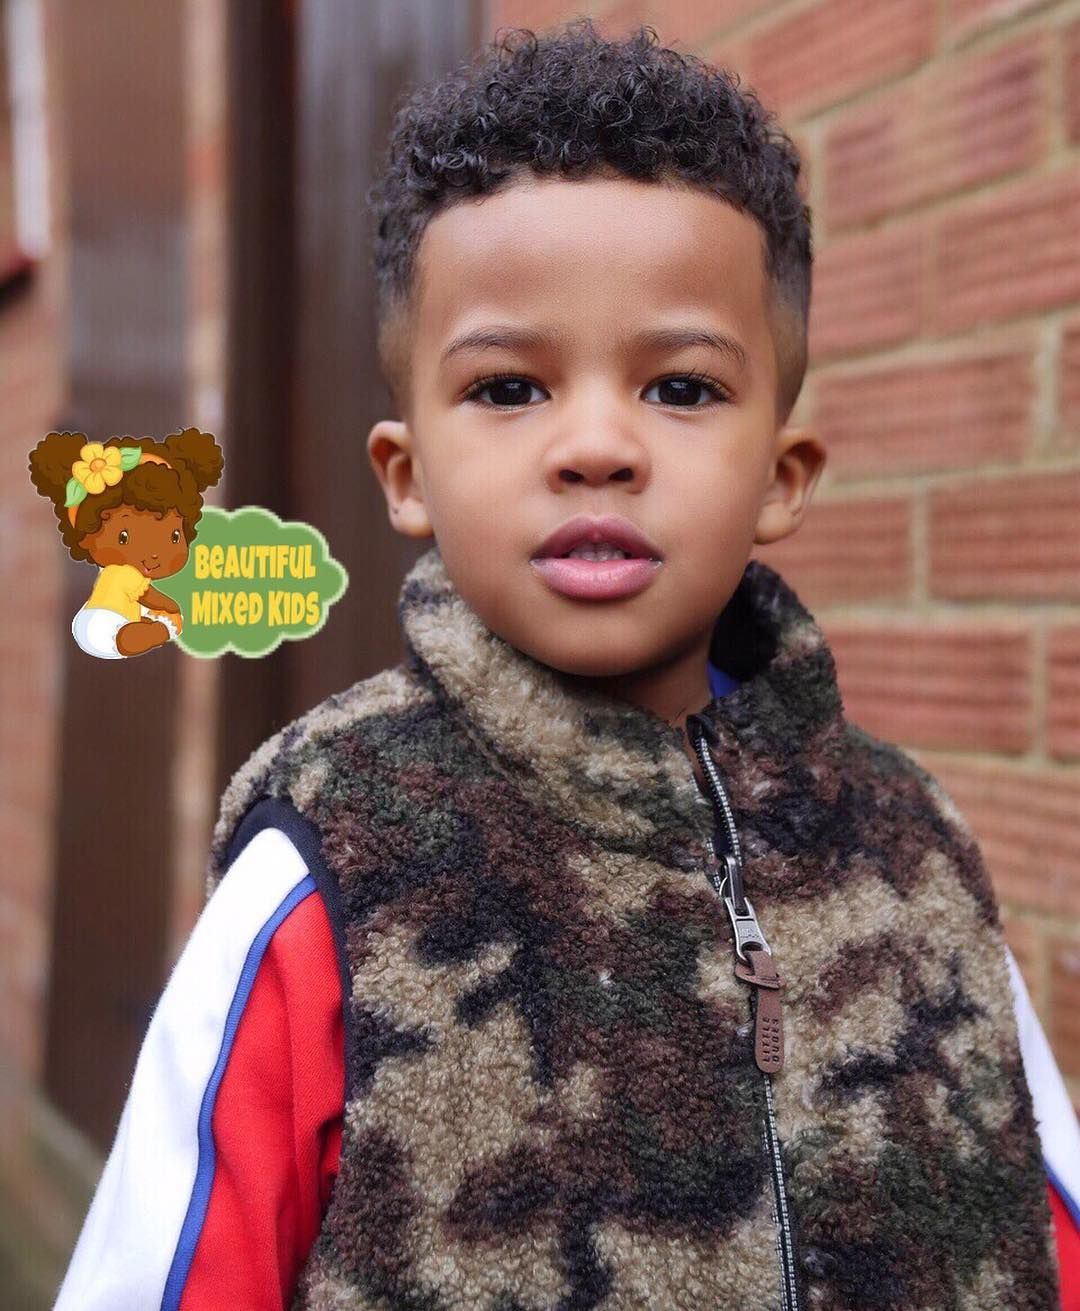 6 207 Mentions J Aime 36 Commentaires Beautiful Mixed Kids Beautifulmixedkids Sur Instagram E Baby Boy Haircuts Boys Haircuts Curly Hair Boys Haircuts